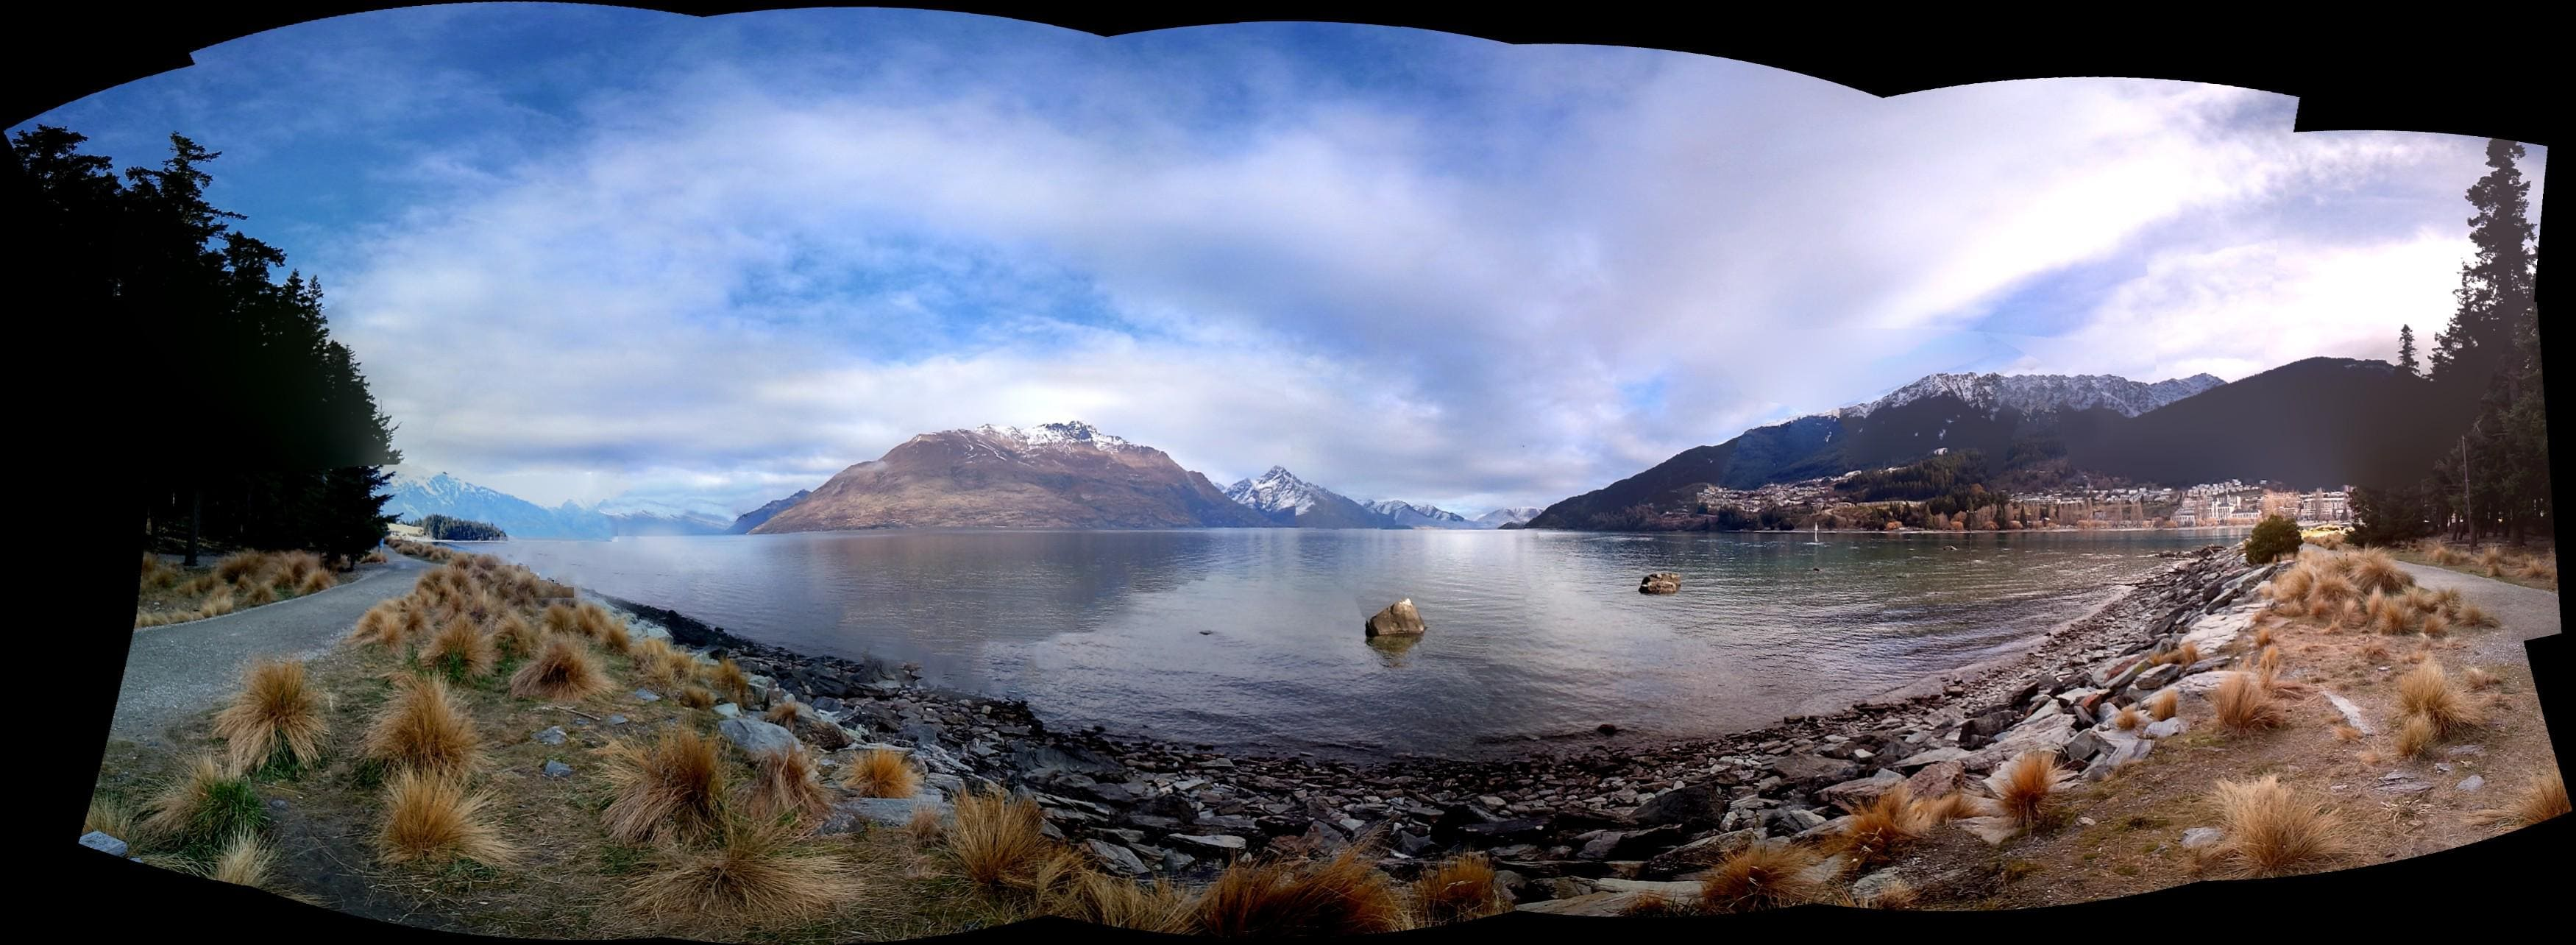 Photosynth-1